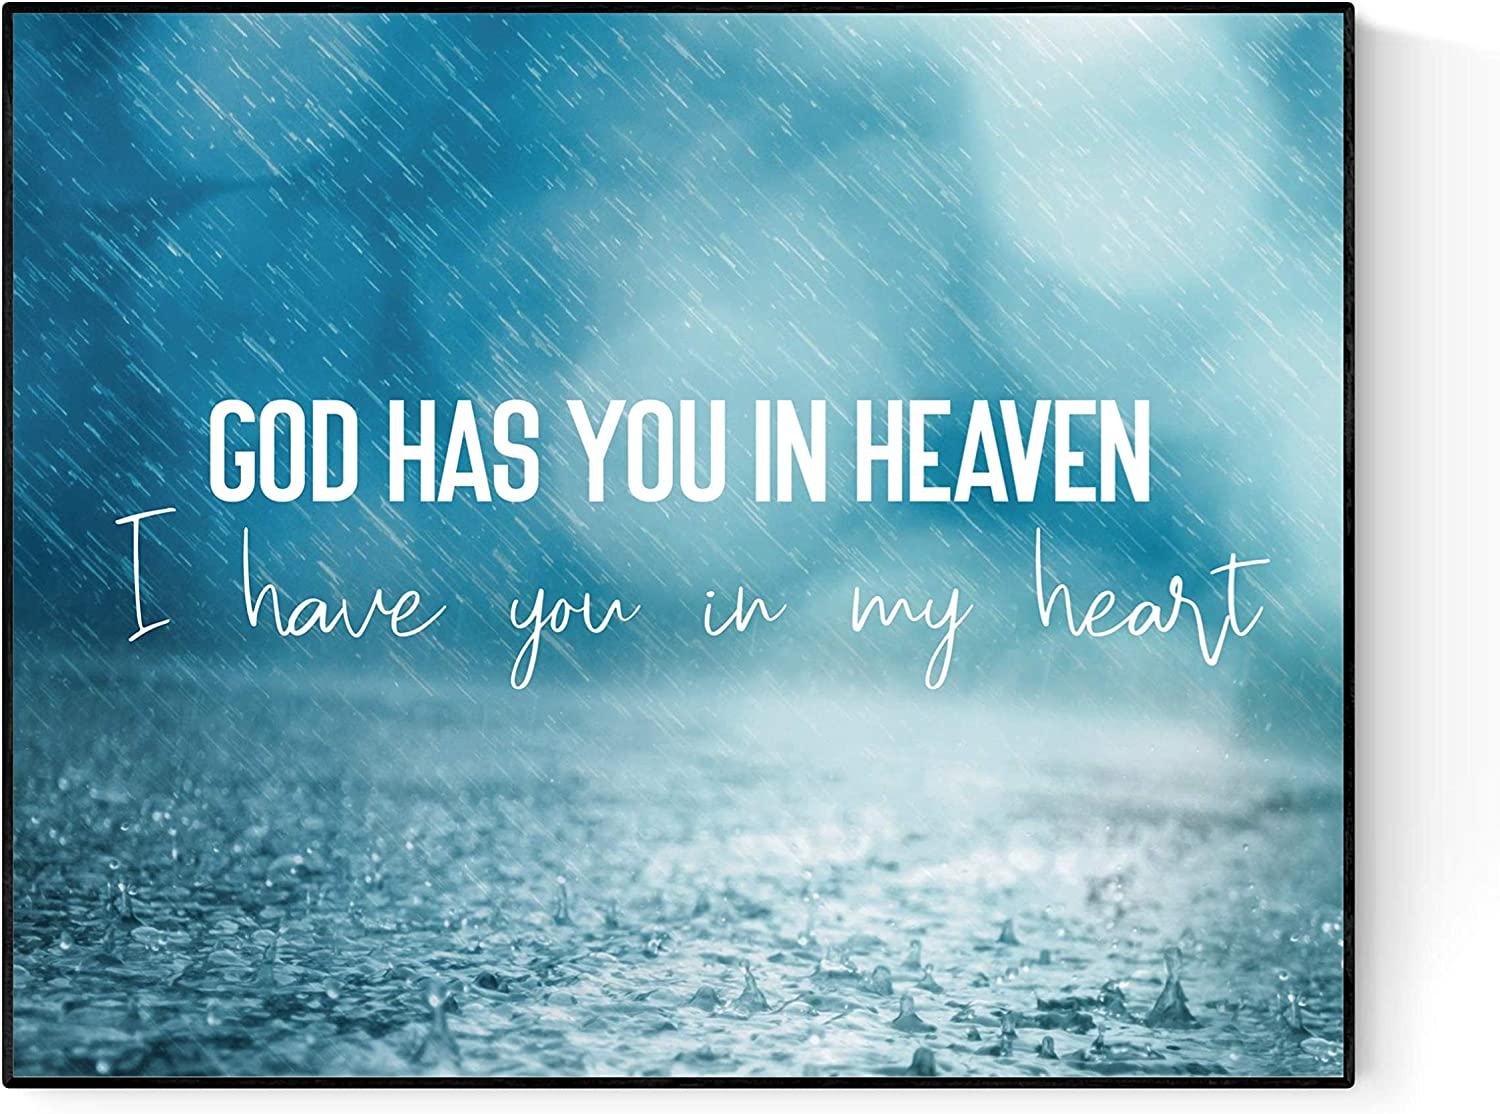 21 Years by Tobymac Song (White) | God Has You in Heaven, I Have You in My Heart | Lyrics Wall Art Print | Faith (11x14)